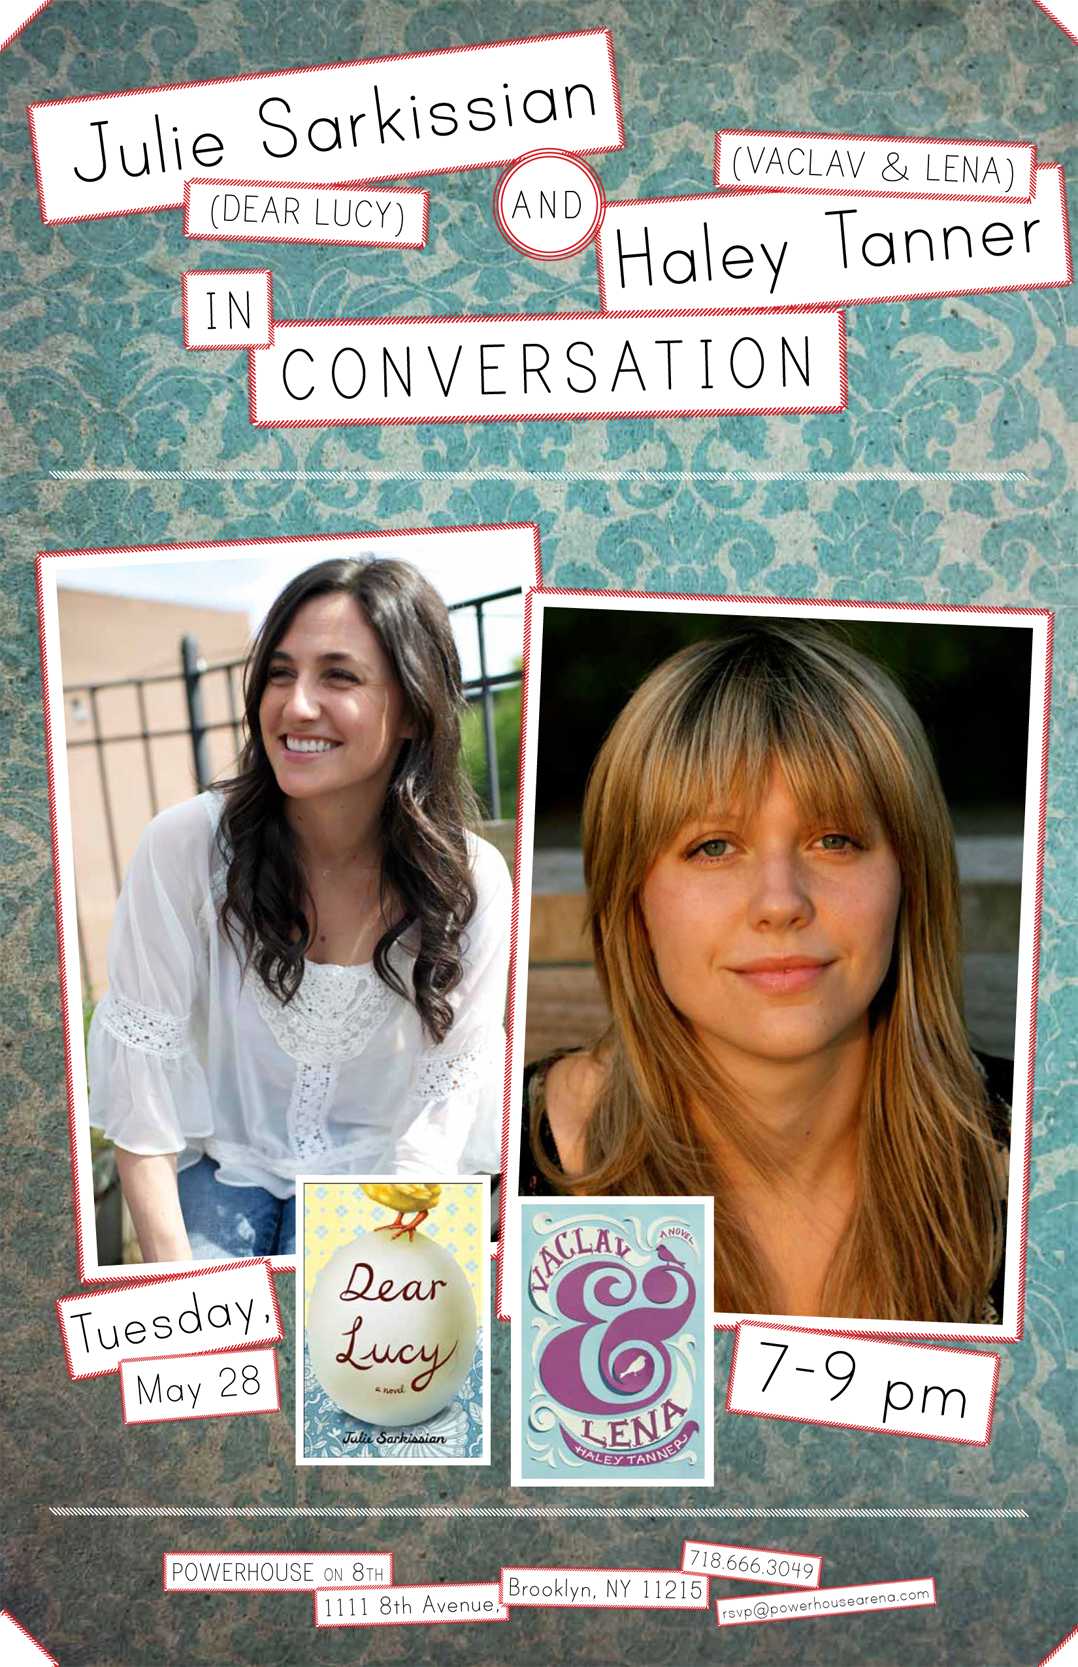 Julie Sarkissian (Dear Lucy) & Haley Tanner (Vaclav & Lena) in Conversation